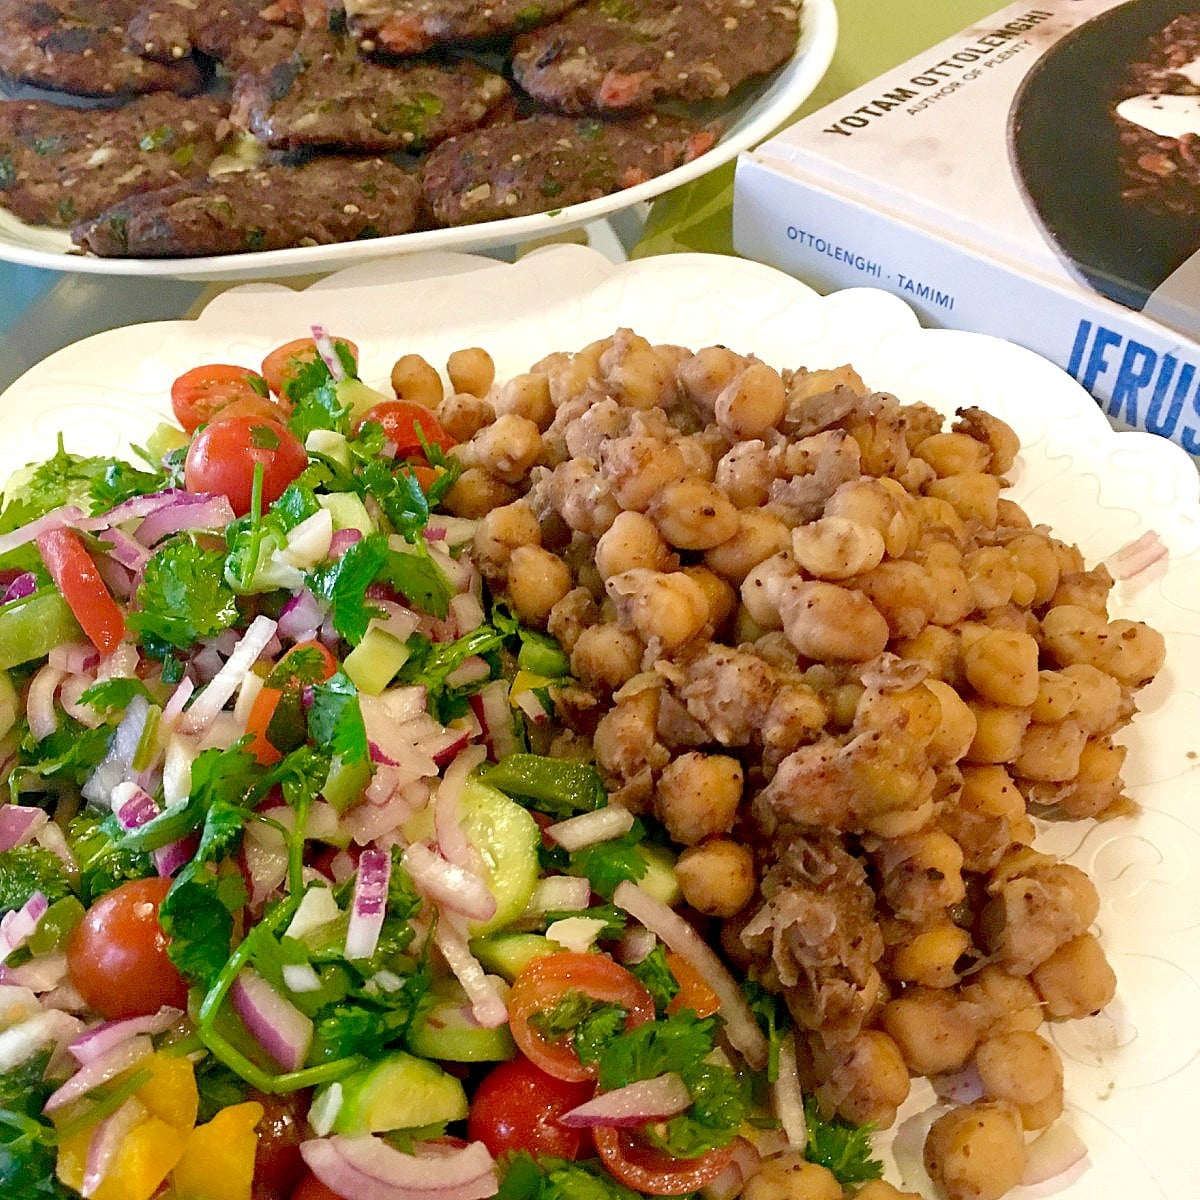 The combination of cold and fresh salad with the warm chickpeas is surprisingly enticing, says Sami Tamimi and Yotam Ottolenghi's cookbook Jerusalem